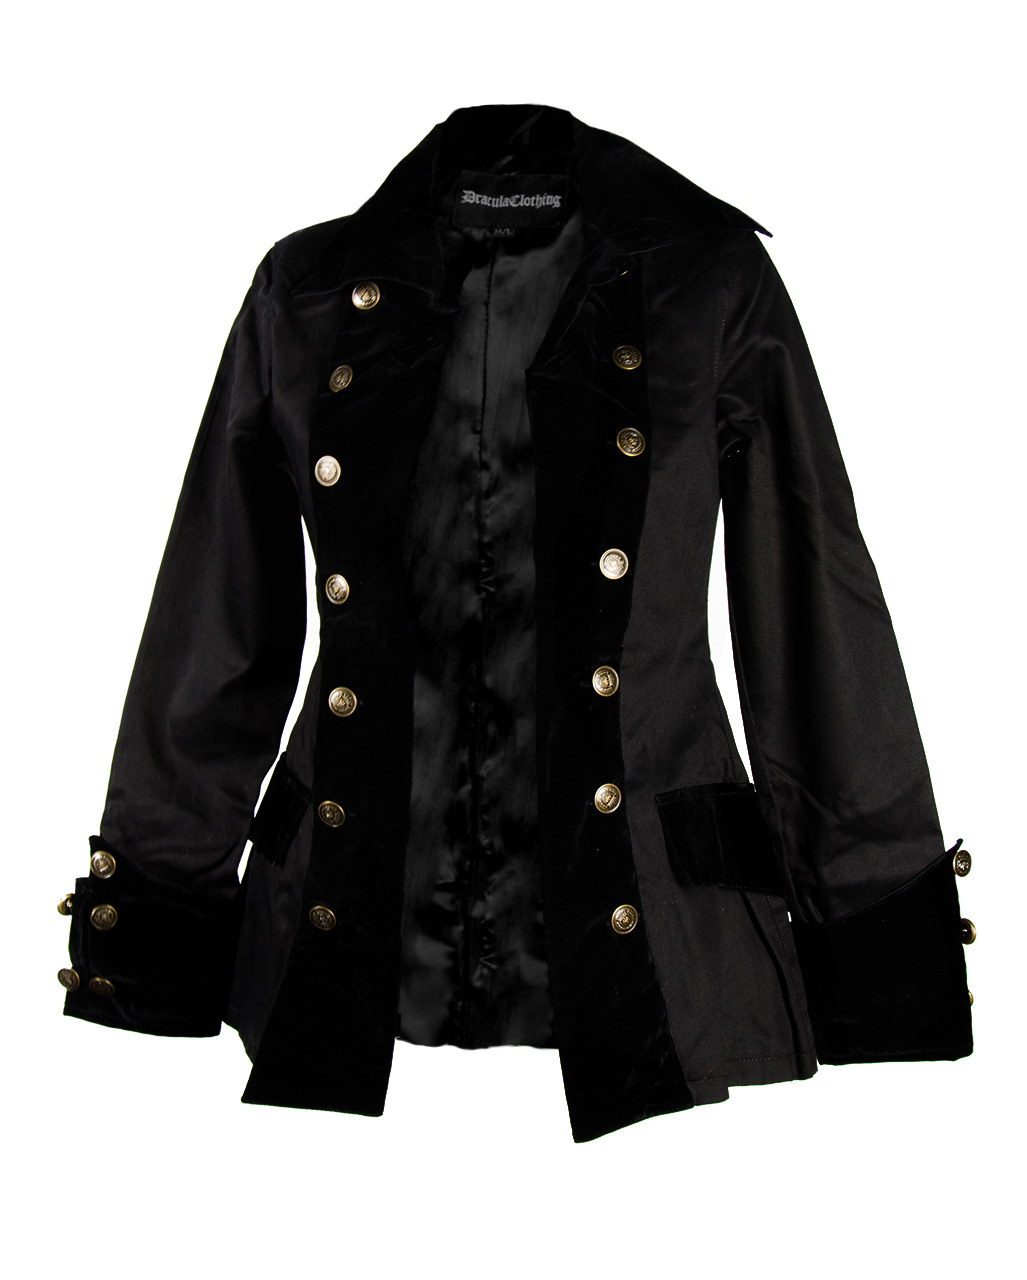 Jacket Pirate Black Jacket Ladies Ladies Pirate Black Ladies iPXZku